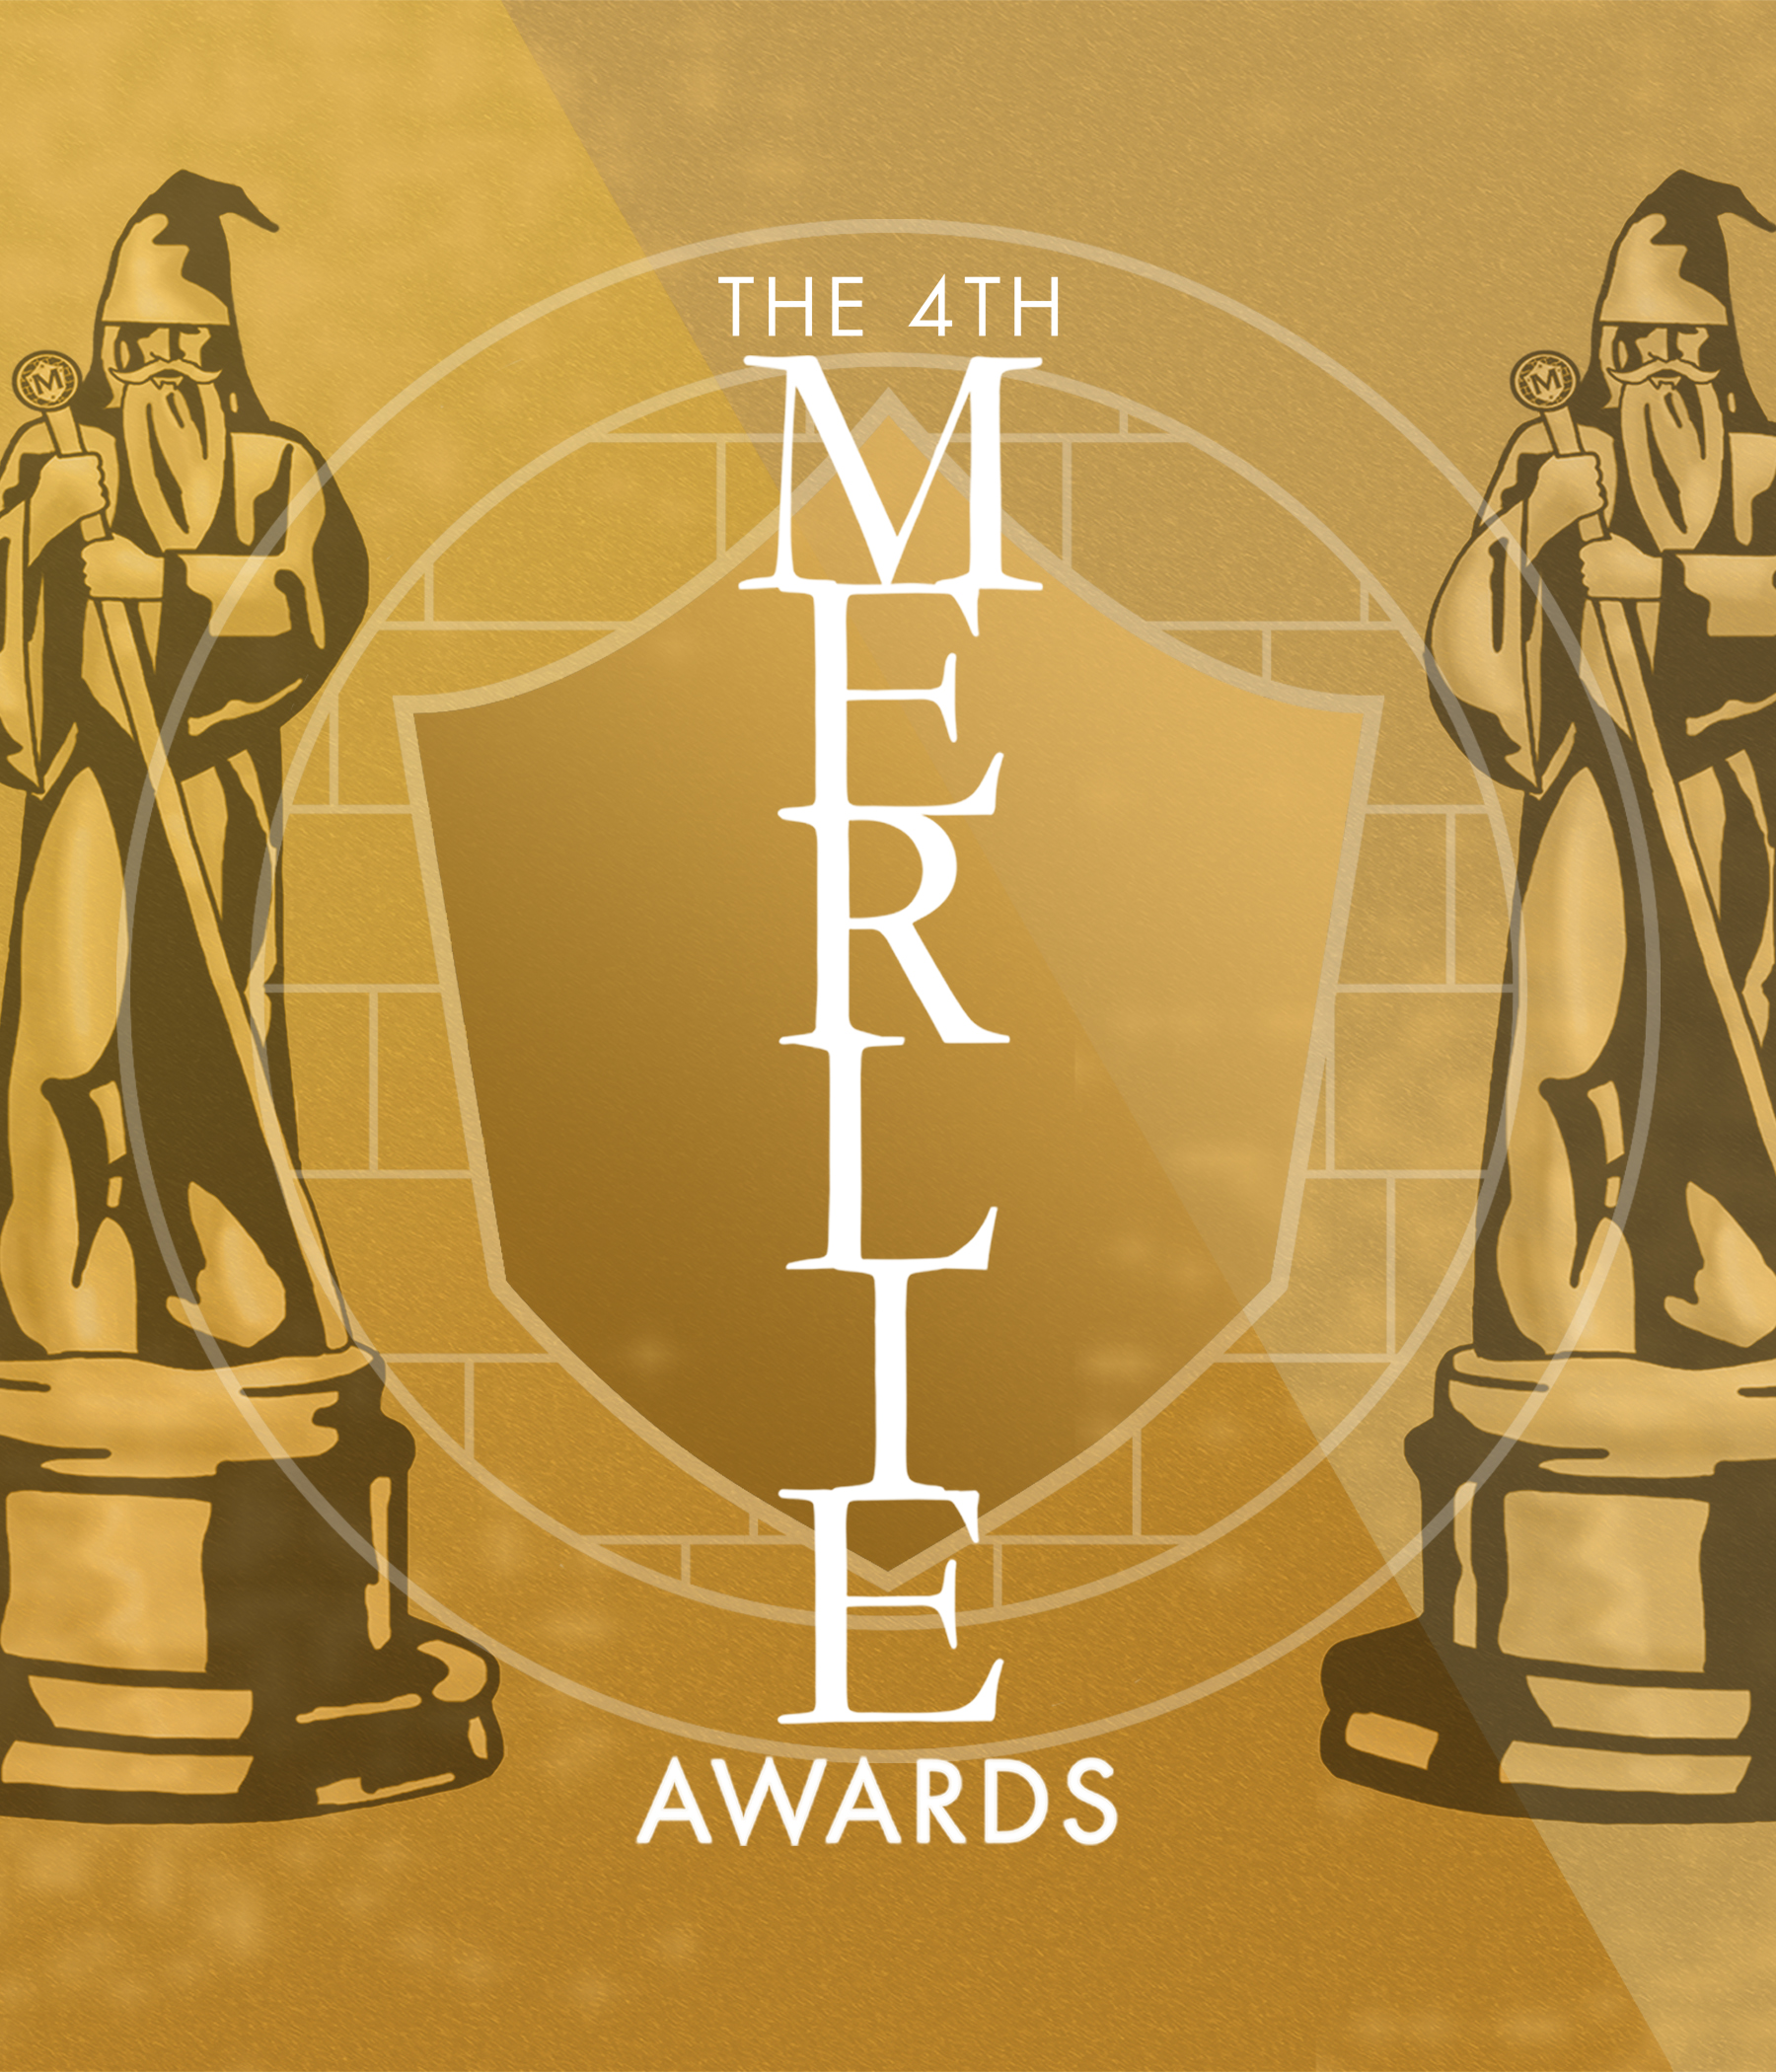 Merlie Awards announcement_vr2 (1).jpg